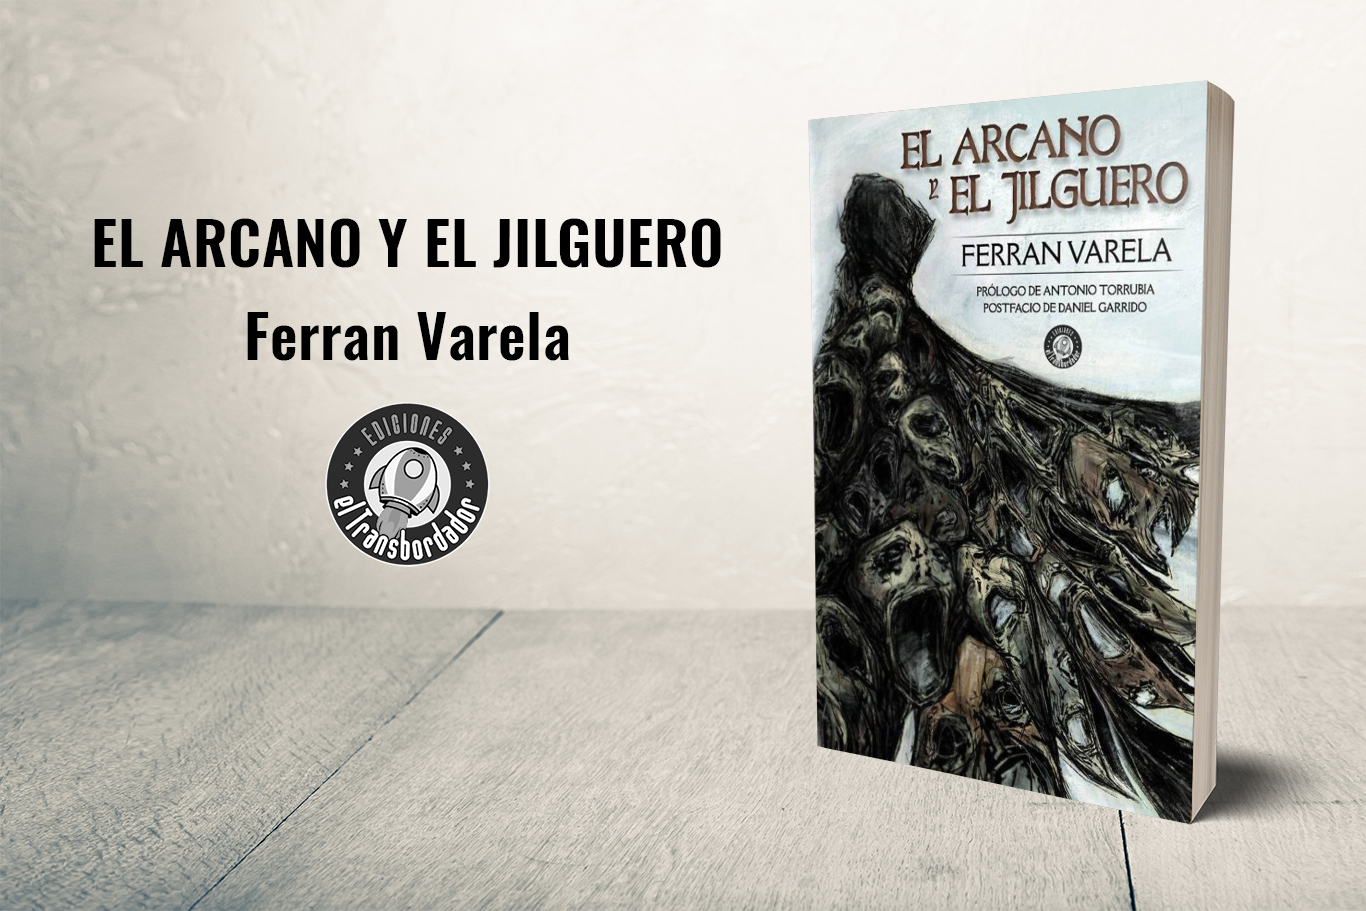 El arcano y el jilgero Alonsus Awards